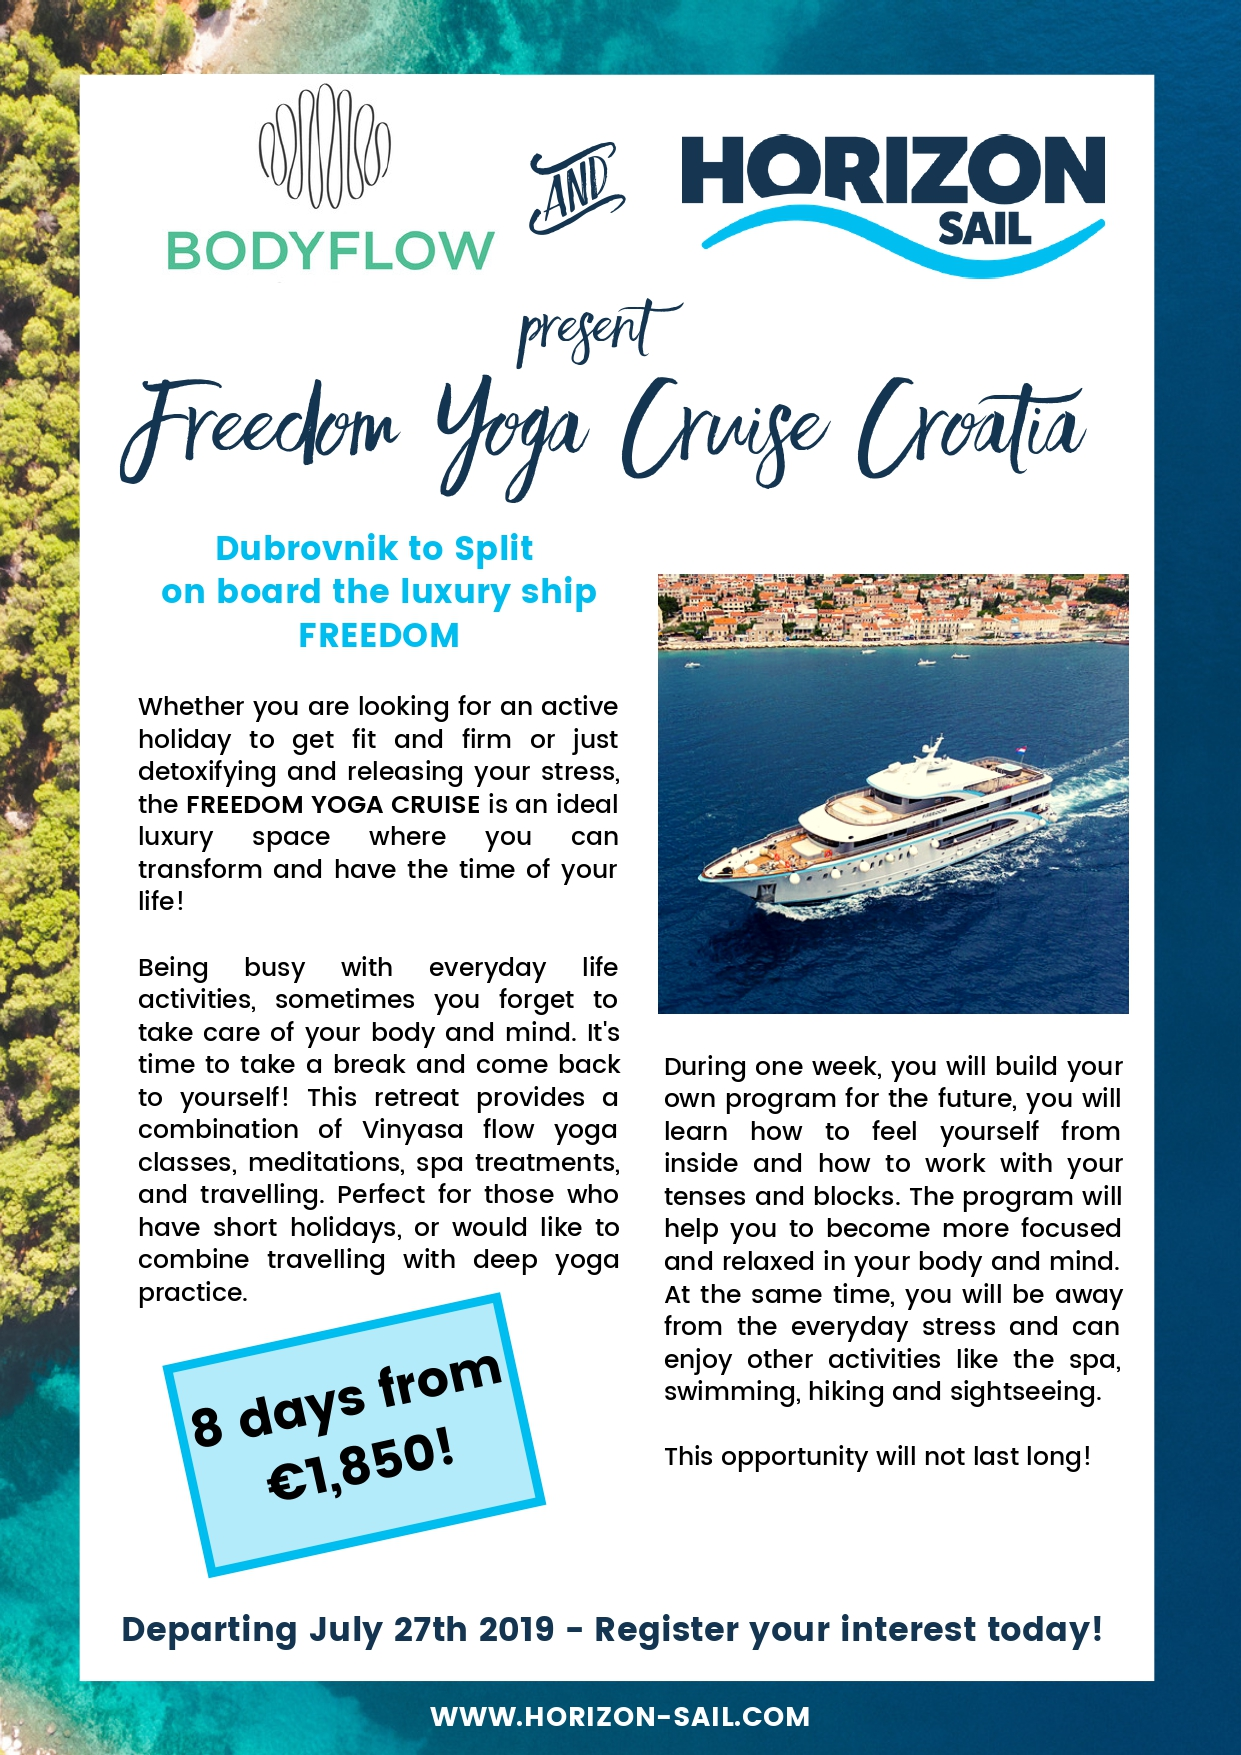 bodyflow-yoga-cruise-2019_pages-to-jpg-0001